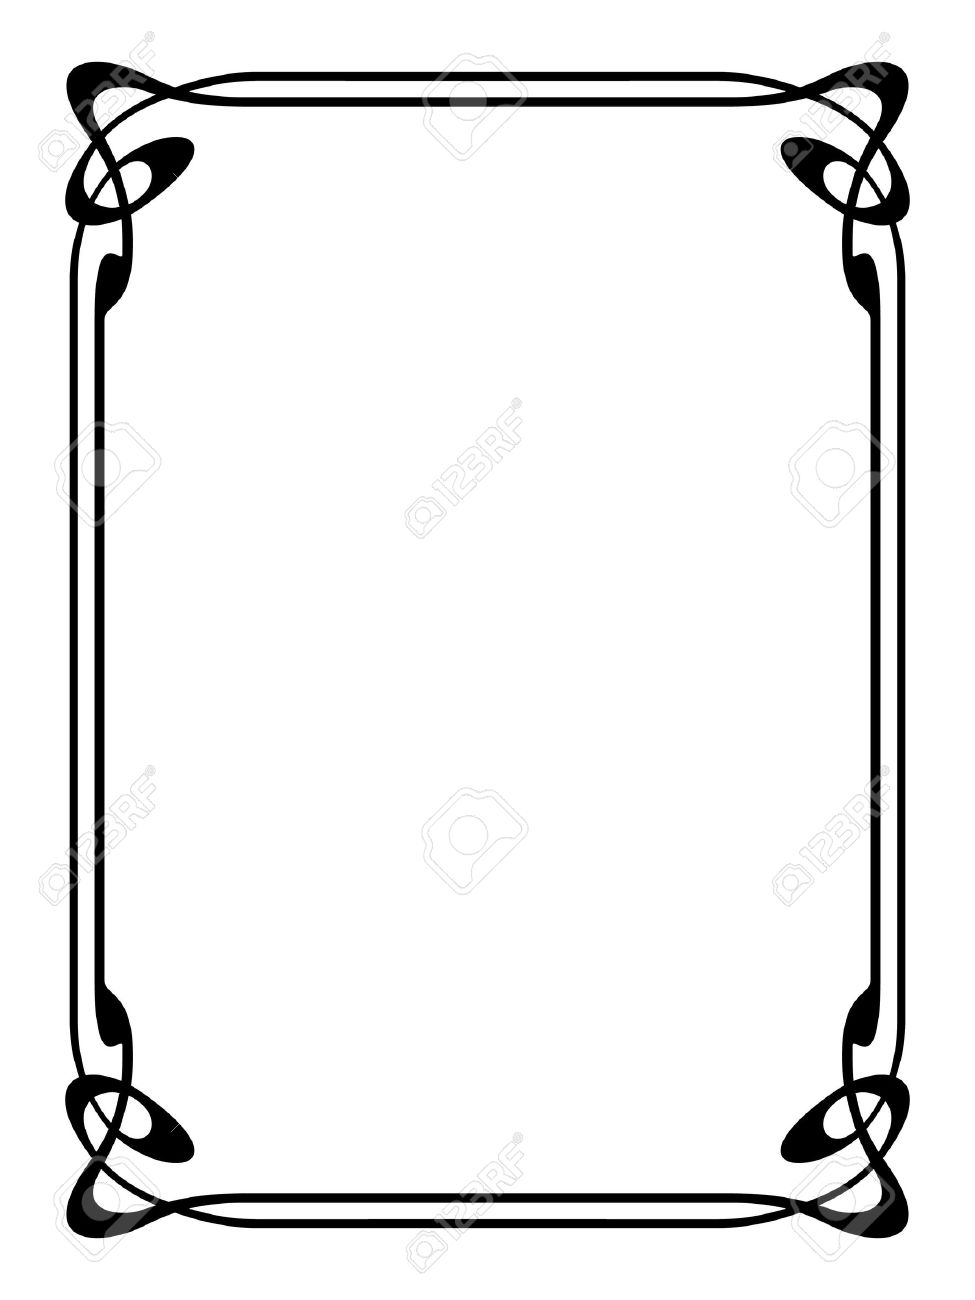 art nouveau modern ornamental decorative frame royalty free cliparts rh 123rf com art nouveau clipart borders art nouveau clipart